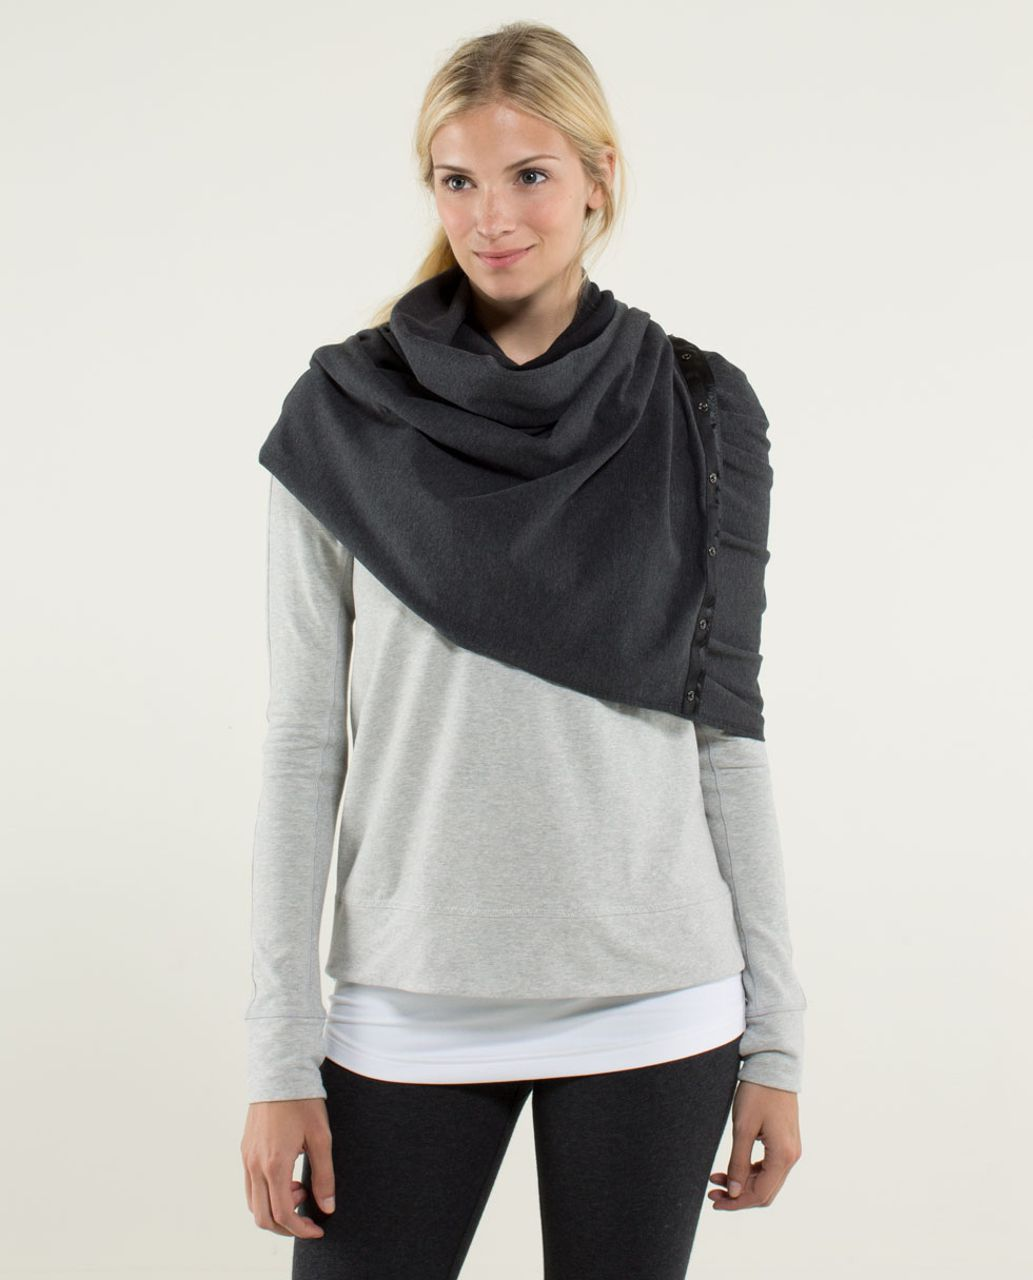 Lululemon Vinyasa Scarf *French Terry - Heathered Black